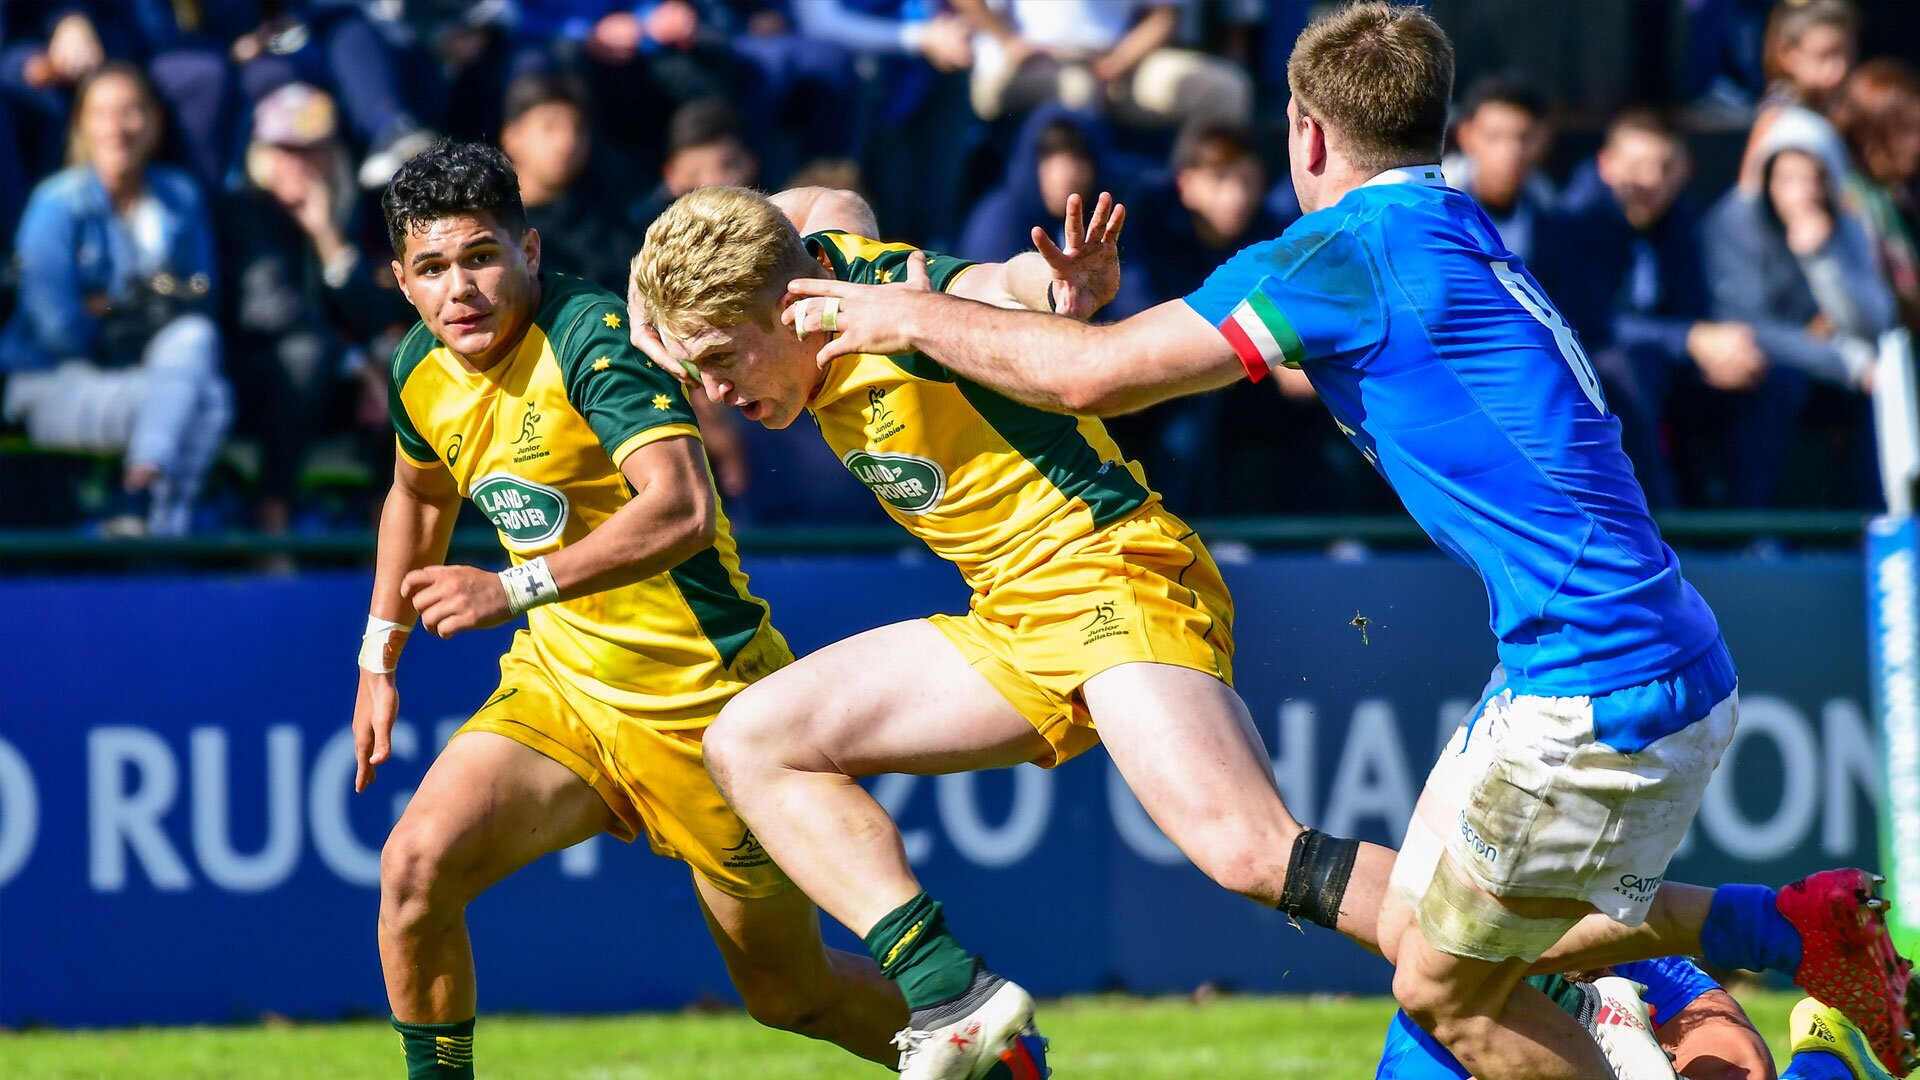 U20 World Championship Round-up: Australia book a semi-final spot with a game in hand